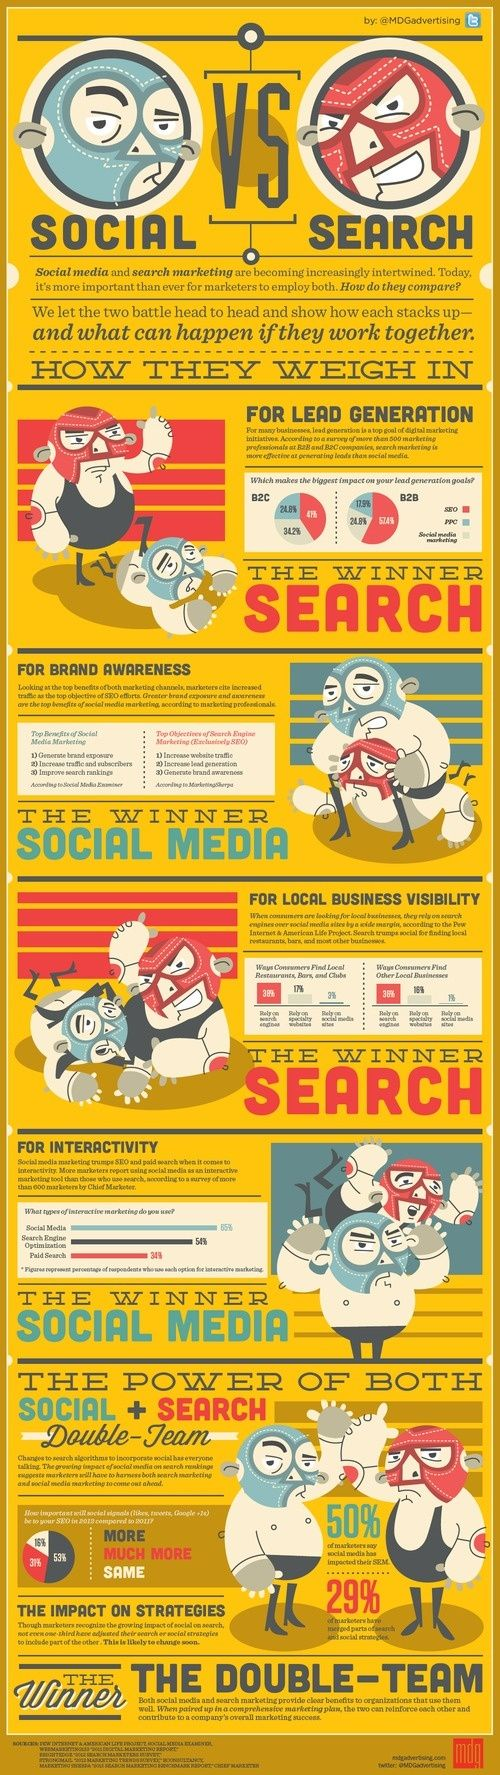 Social Media Marketing vs SEO Who Wins